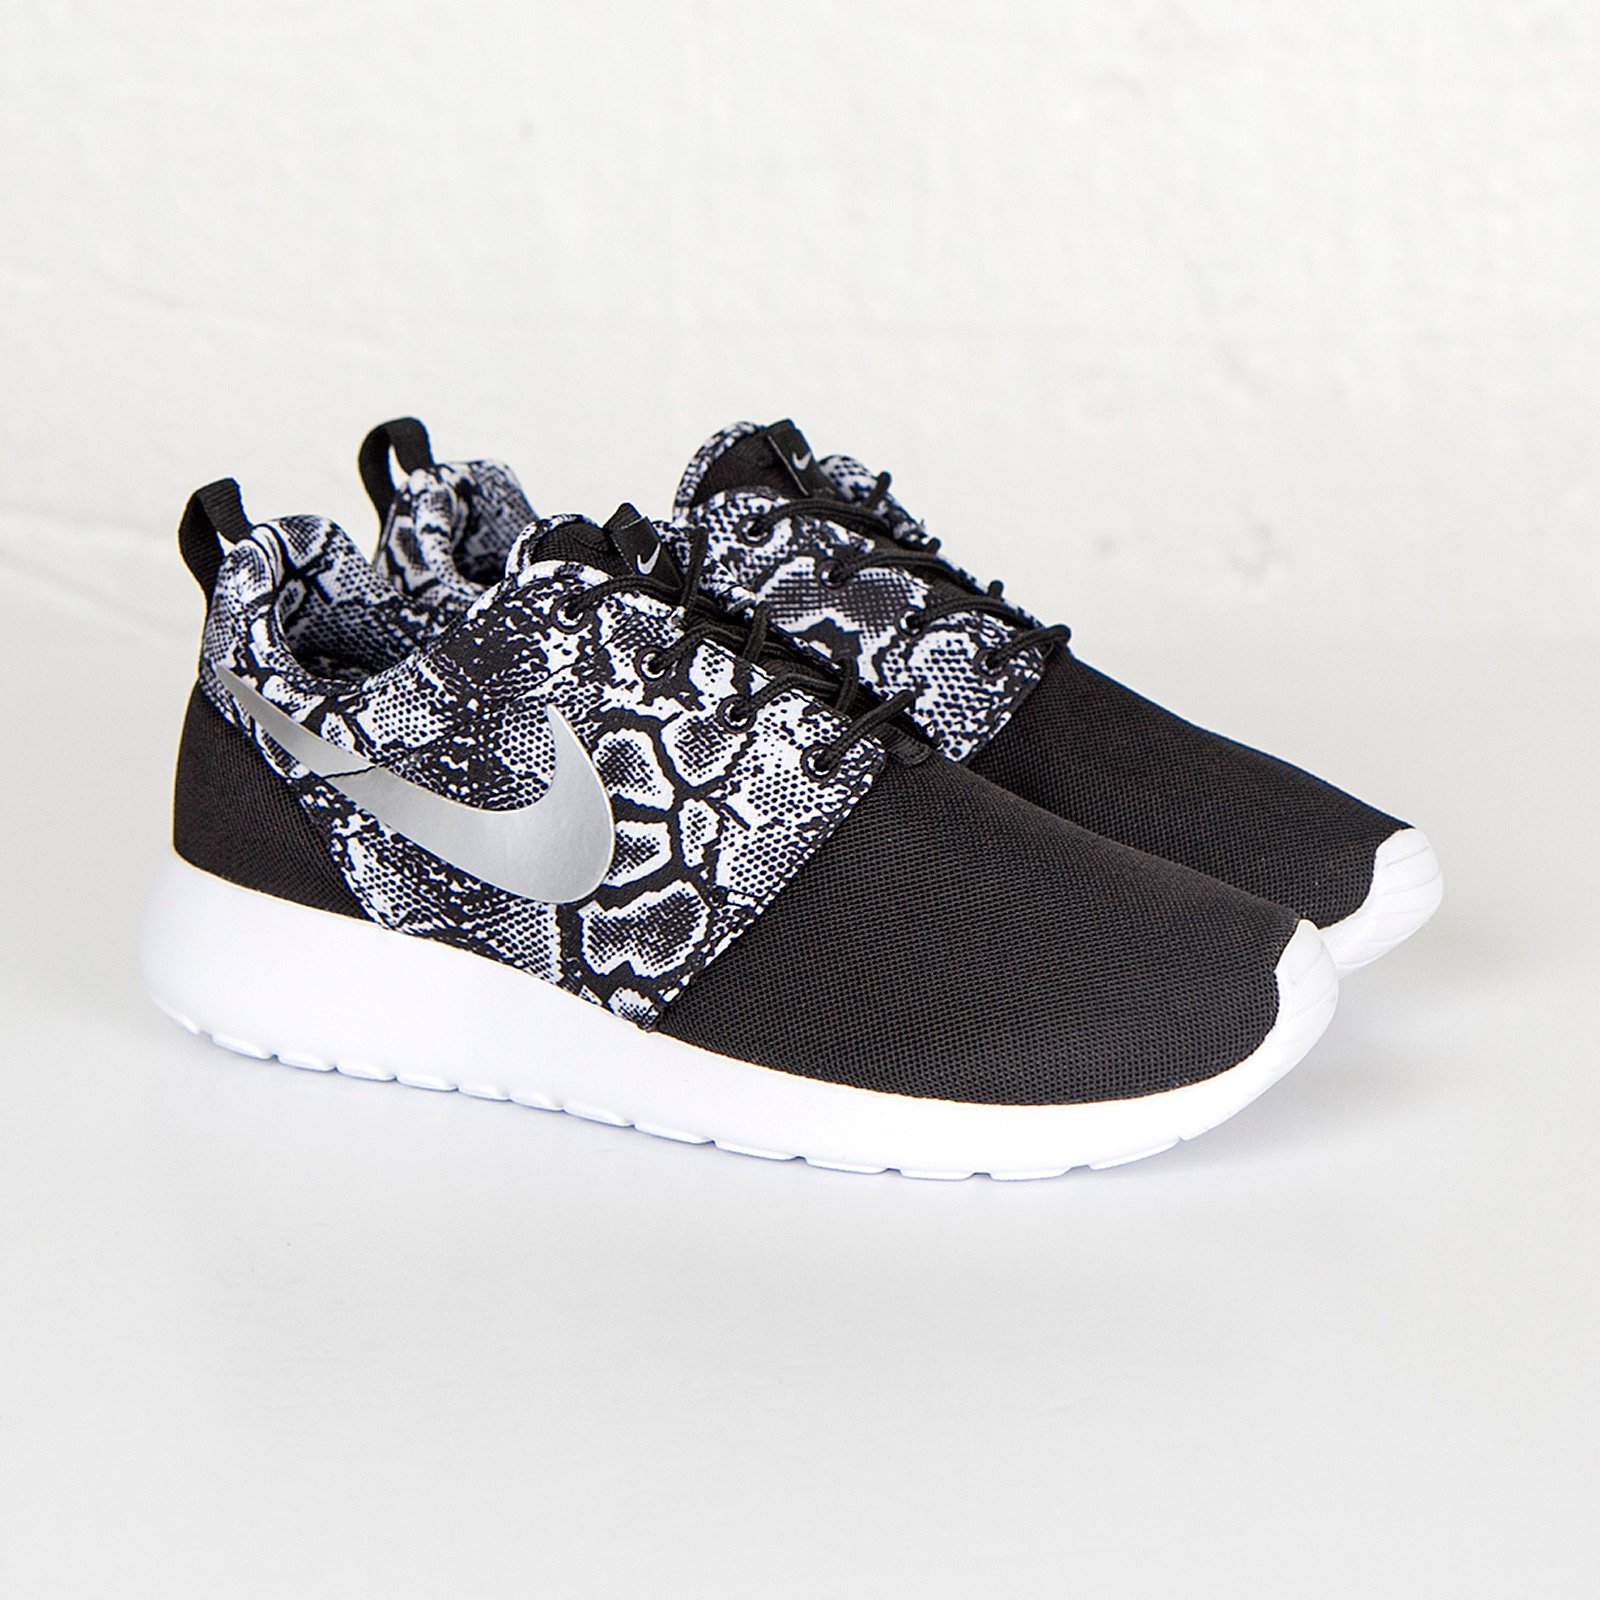 huge selection of 1f4ca c4b71 Nike Wmns Roshe One Print - 599432-003 - Sneakersnstuff ...